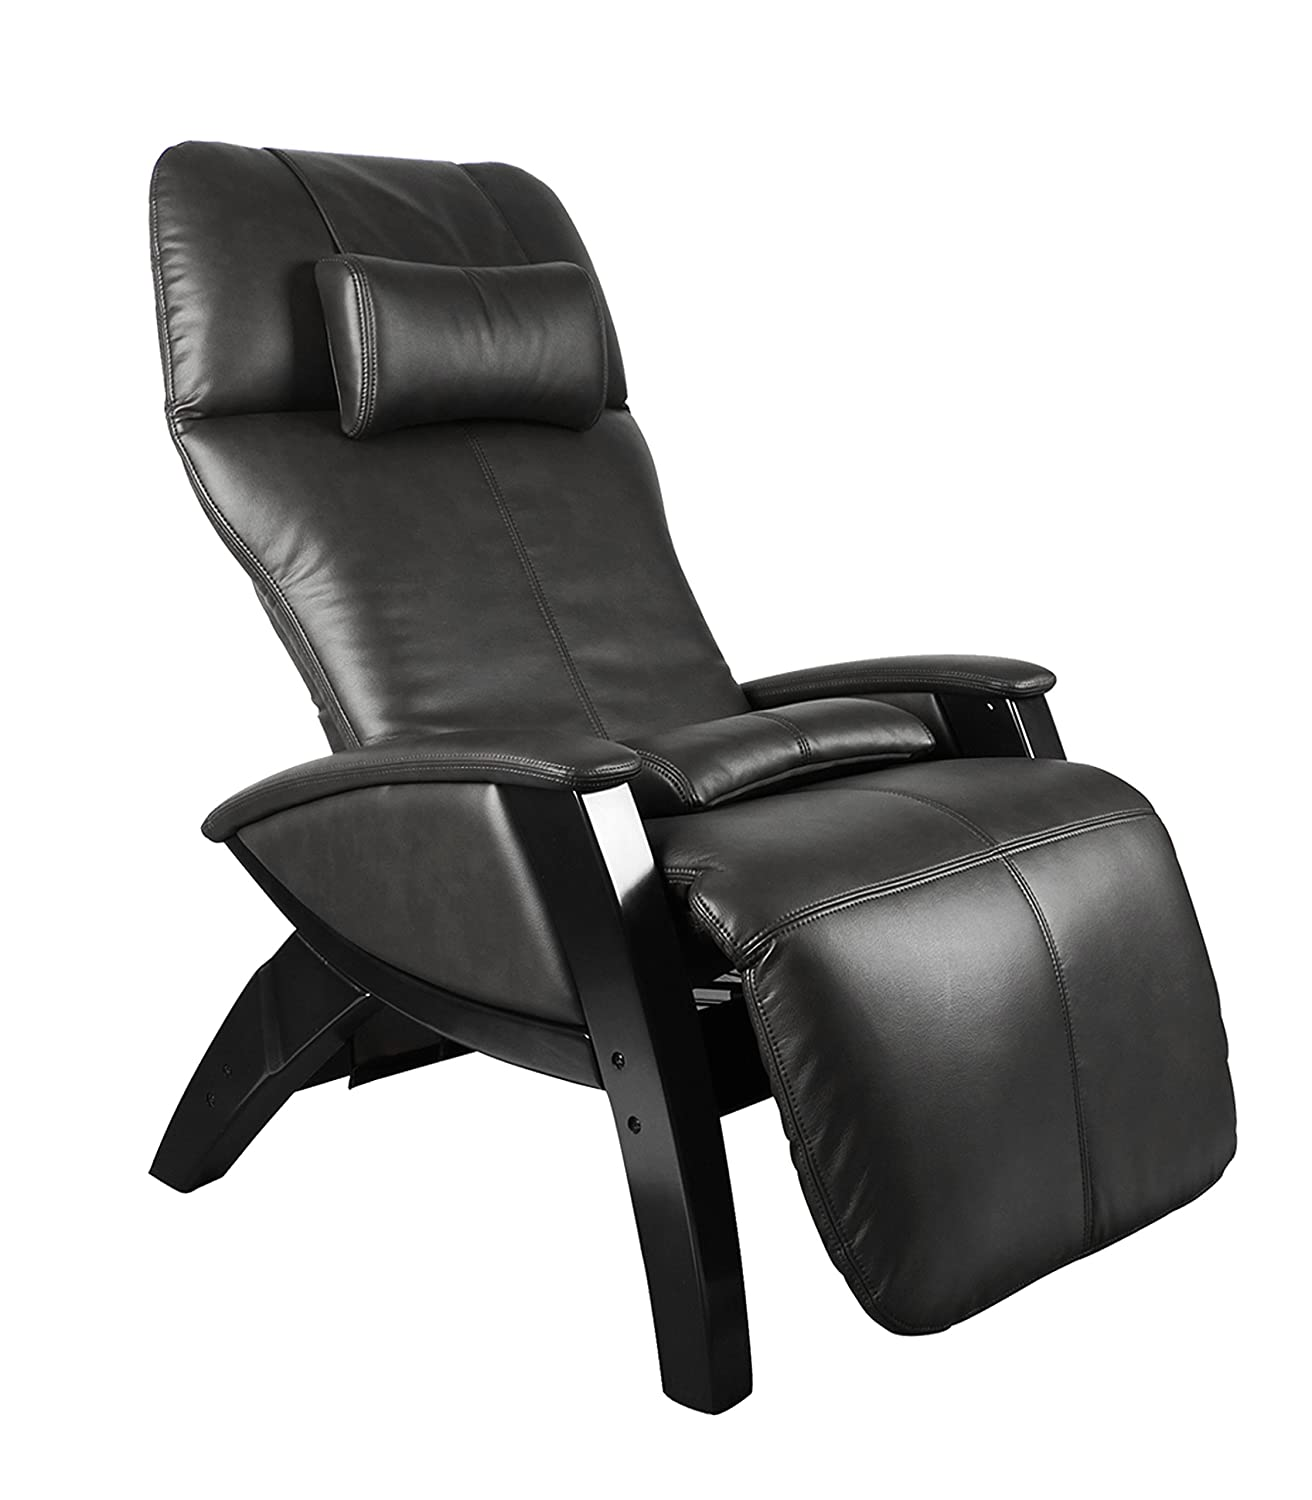 Amazon Cozzia Dual Power ZG Recliner Black Kitchen & Dining